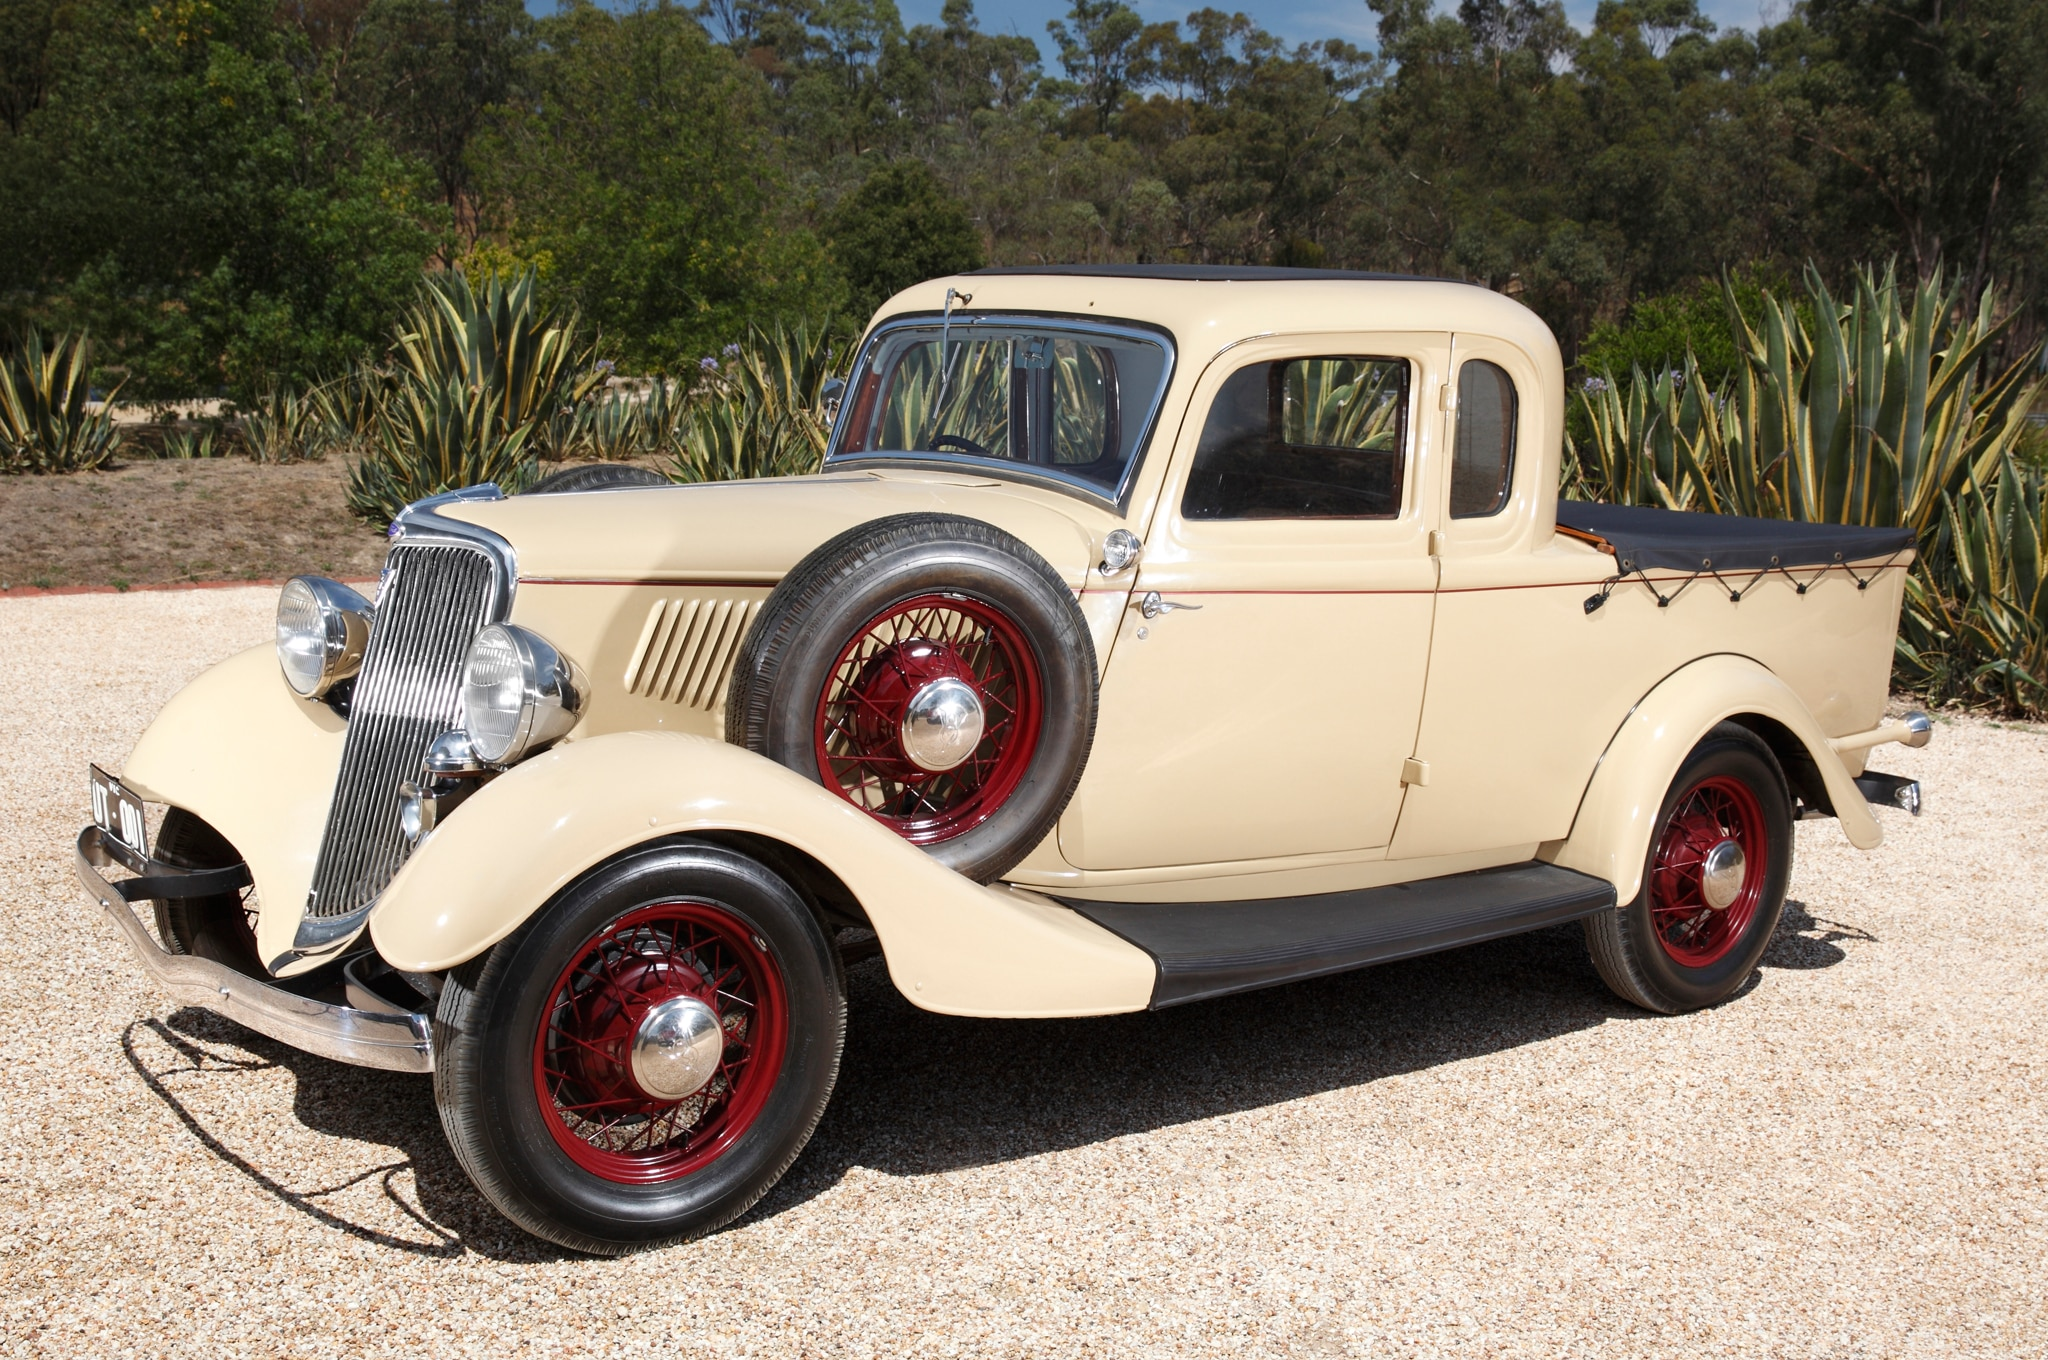 Restored Bandt ute front view